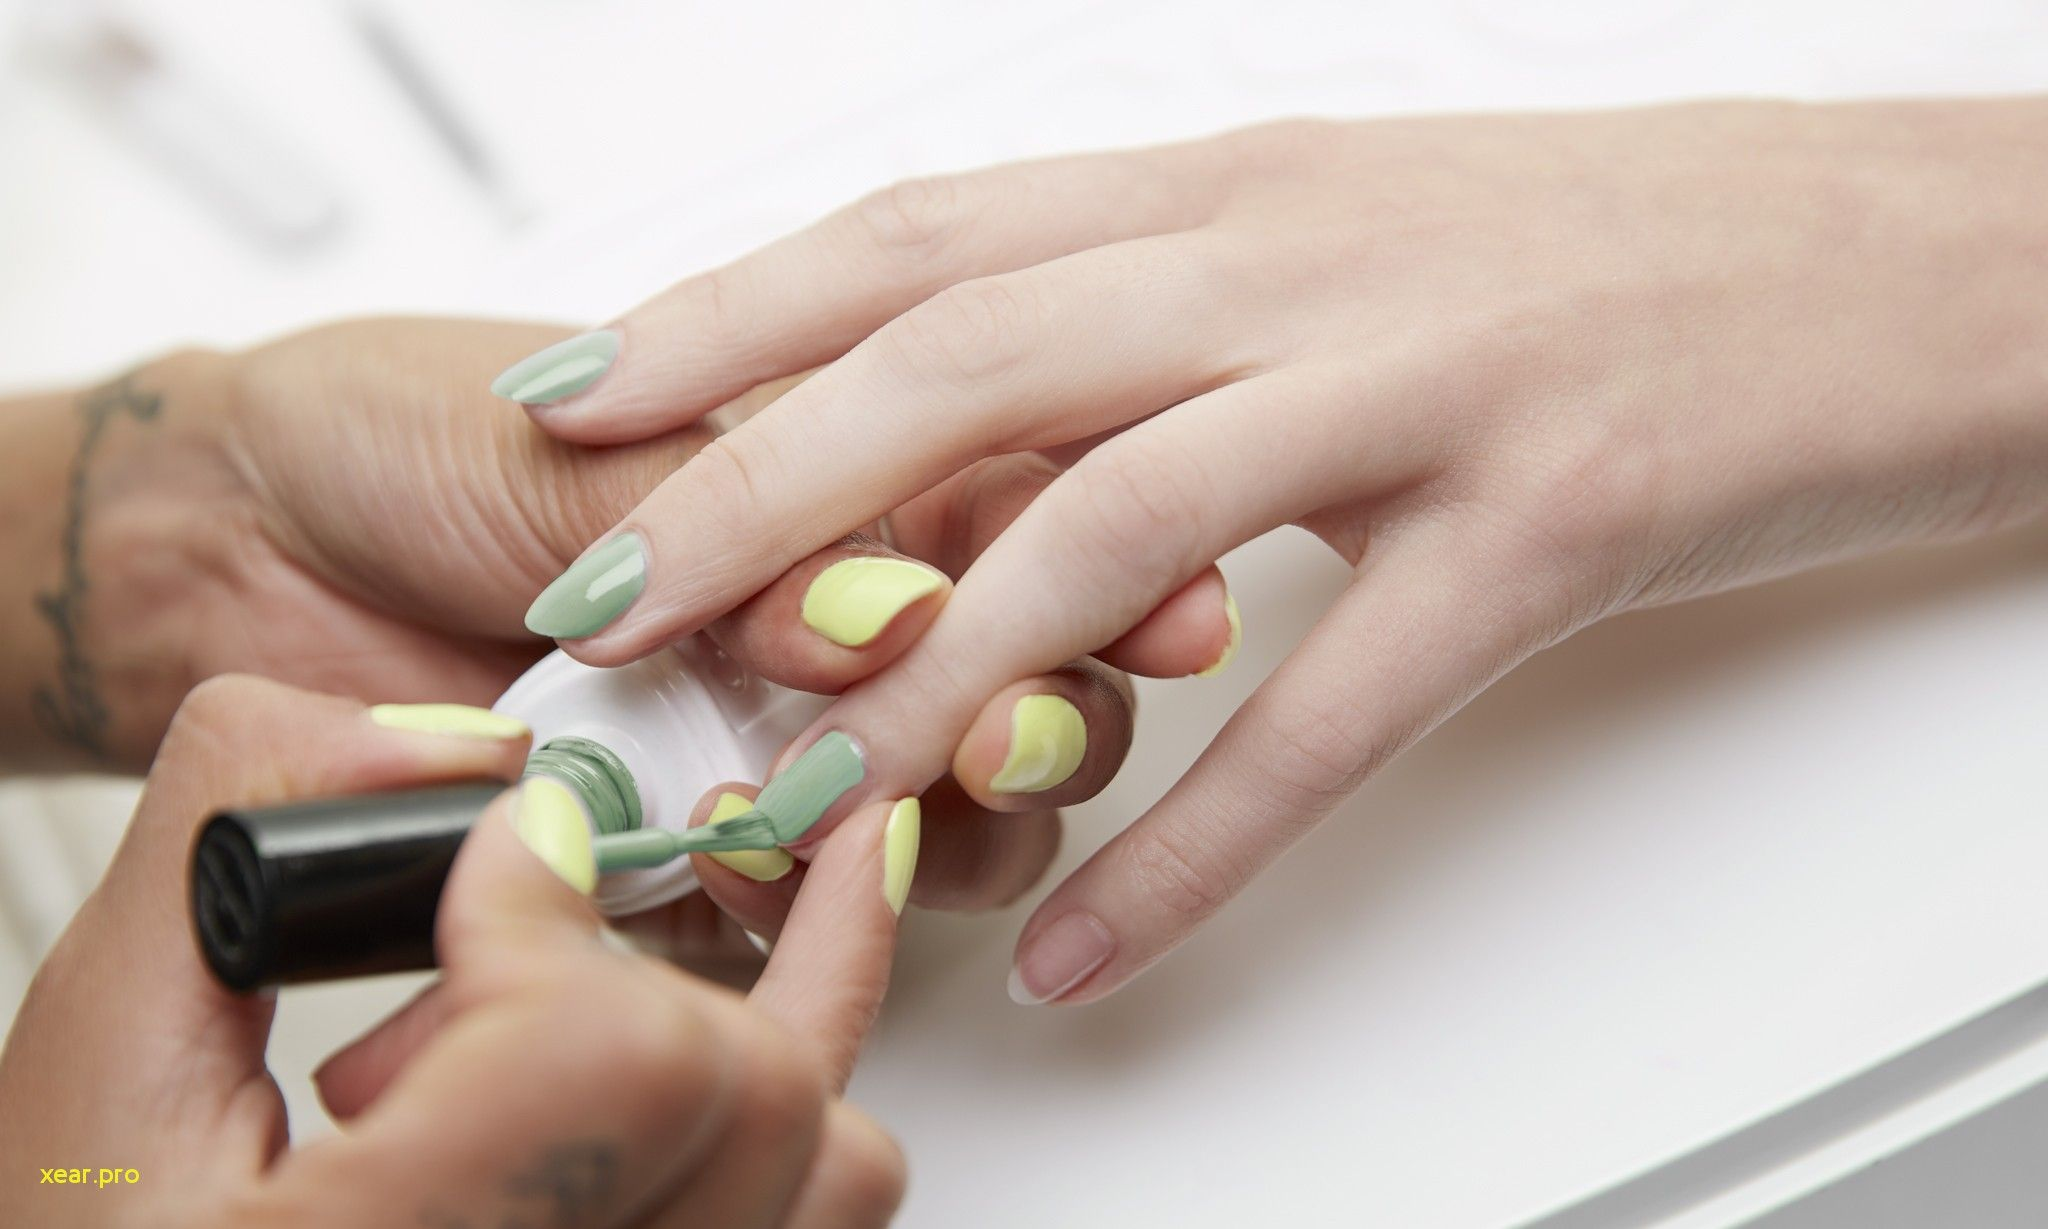 New Nail Salon By Target In Frisco Manicure And Pedicure Gel Mani Spa Manicure Red nail salon dubai read reviews and